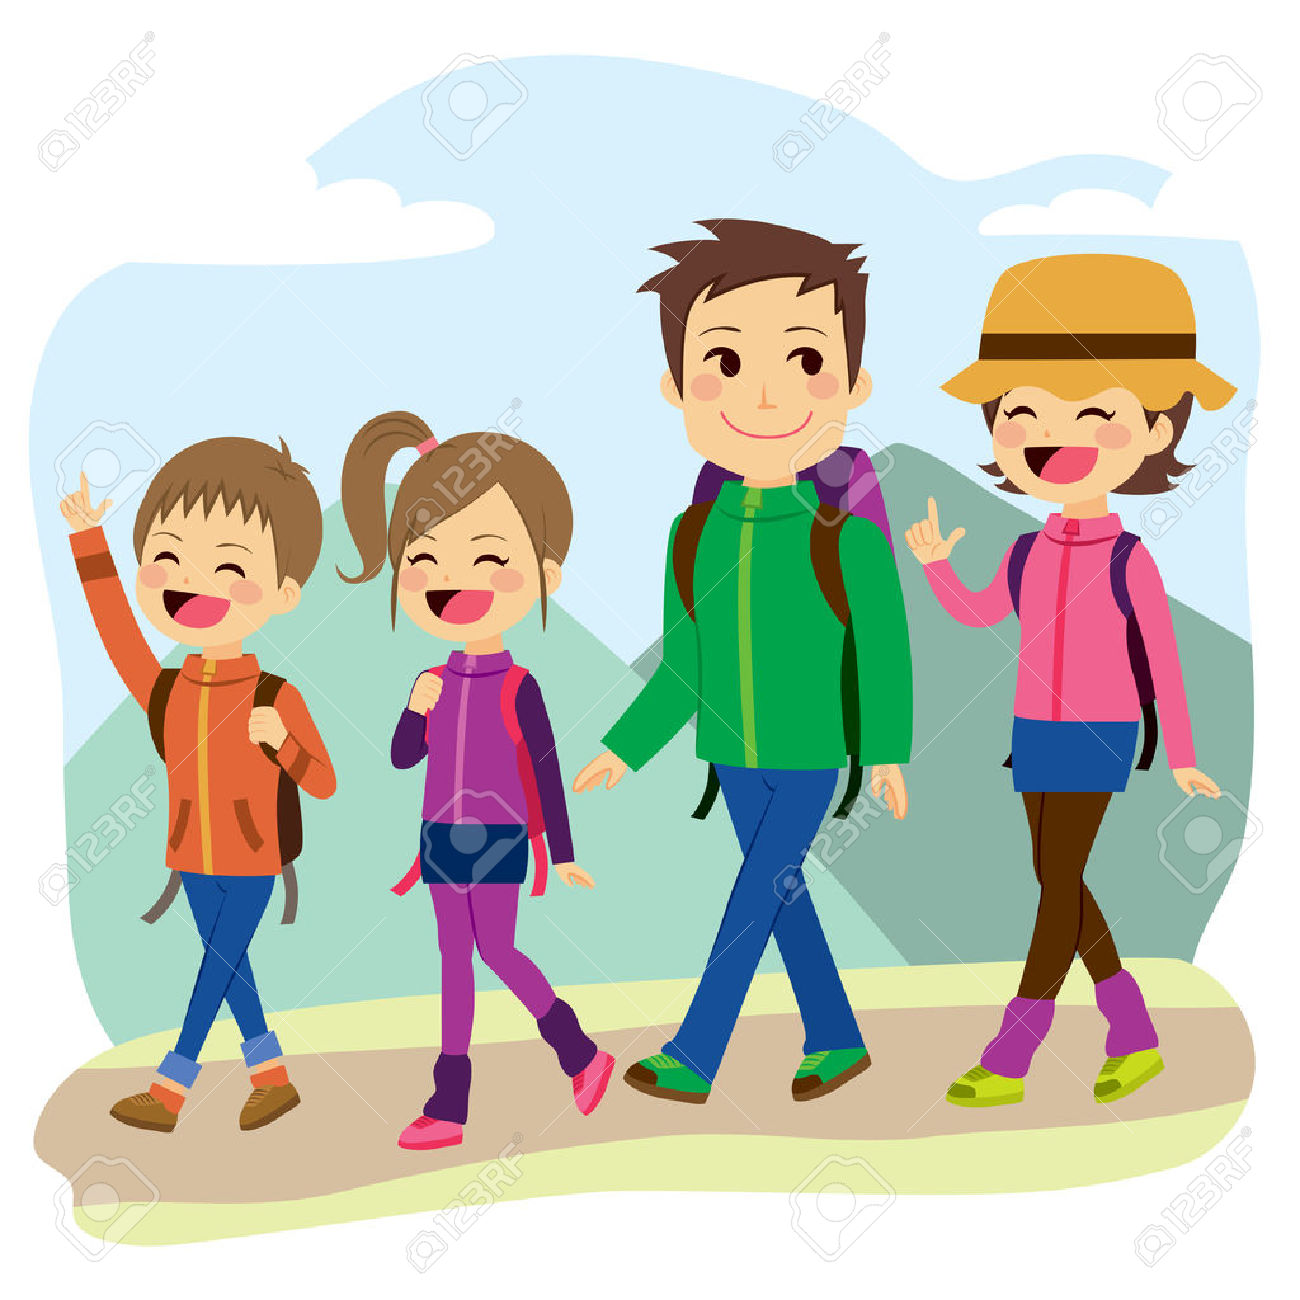 family hiking clipart free download best family hiking